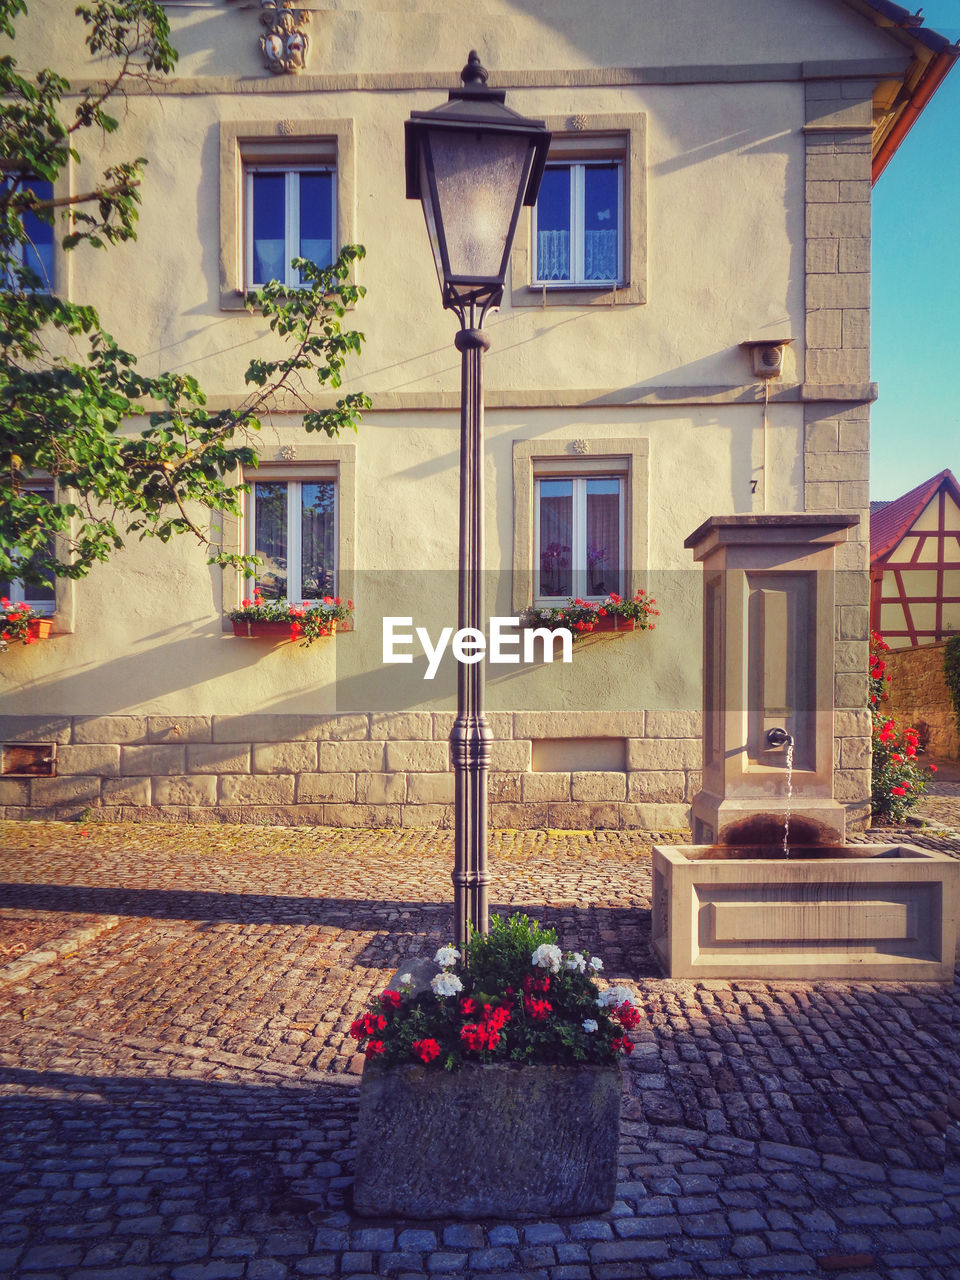 architecture, building exterior, built structure, building, window, flower, flowering plant, plant, residential district, nature, potted plant, no people, house, street, outdoors, lighting equipment, city, day, footpath, sidewalk, flower pot, flower arrangement, electric lamp, bouquet, houseplant